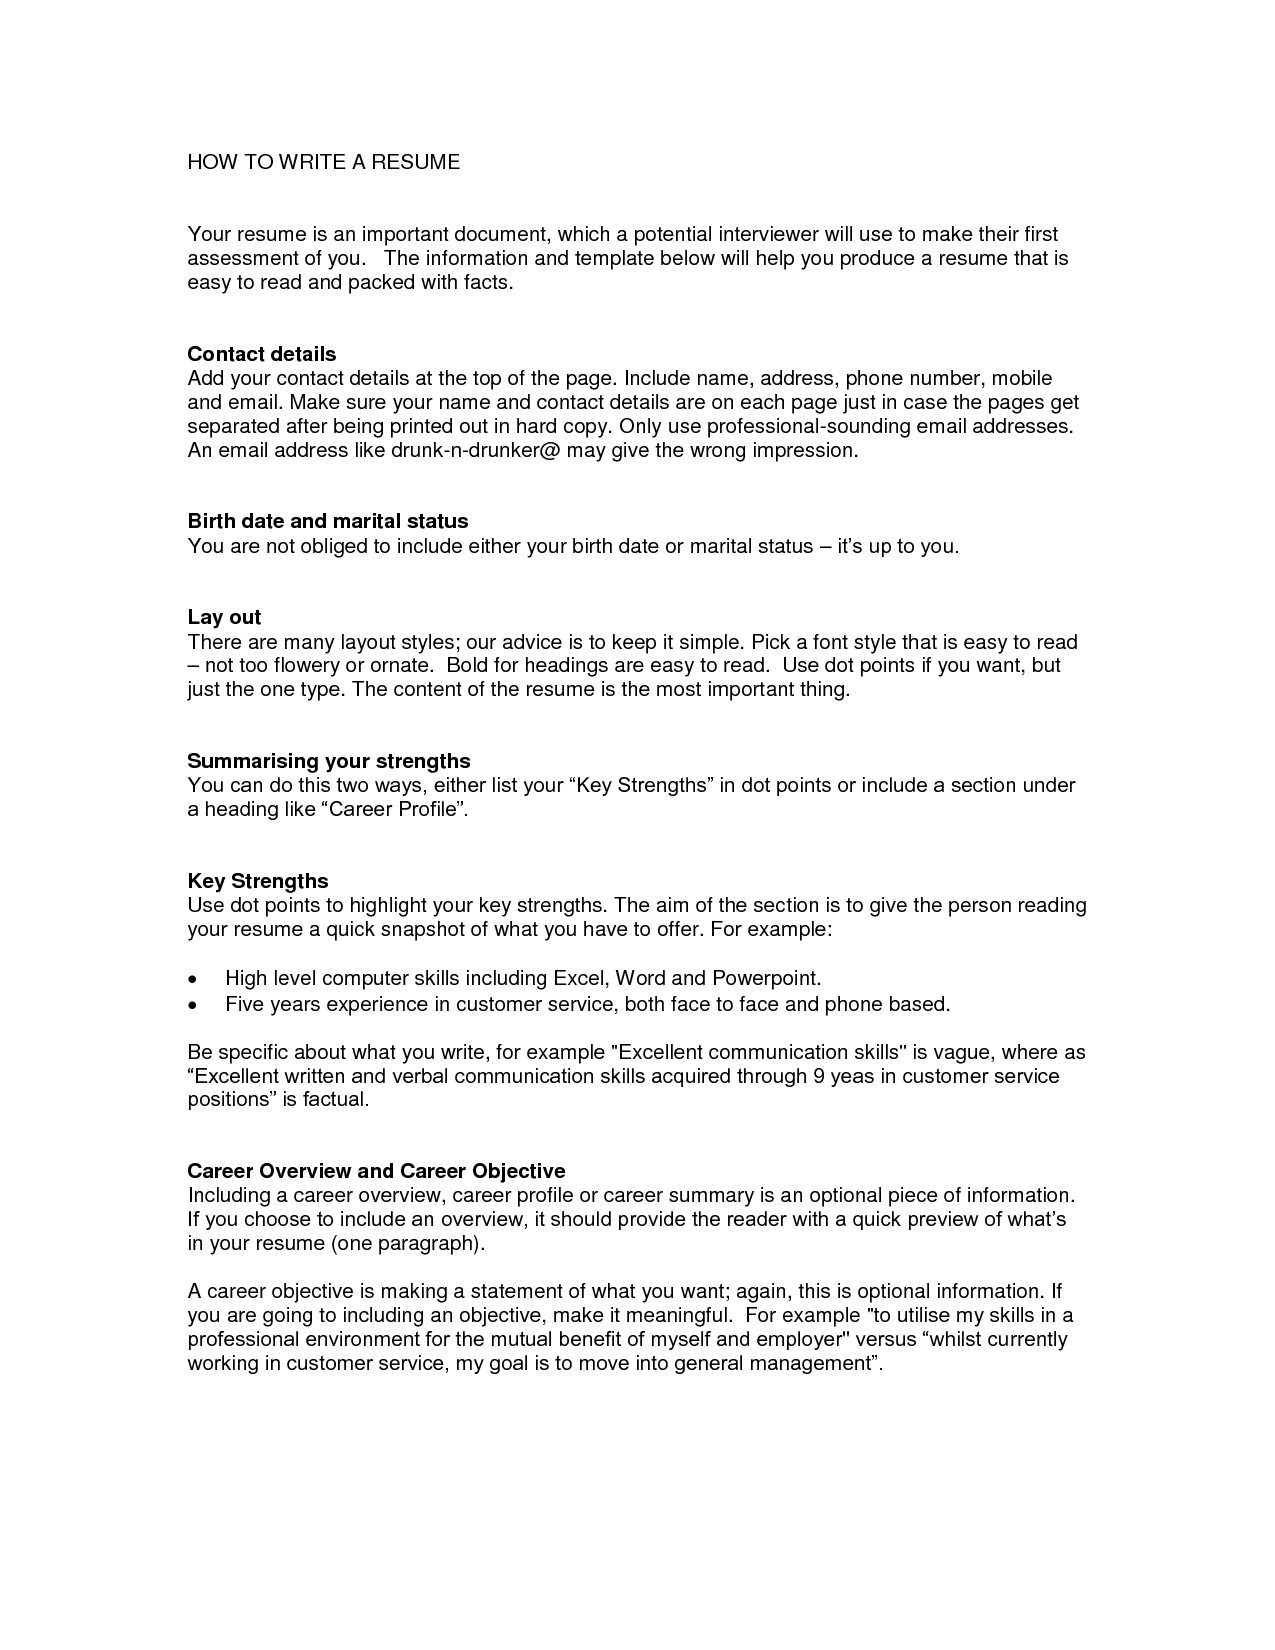 How To Write A Resume Net The Easiest Online Resume BuilderWriting A Resume  Cover Letter Examples  Make A Quick Resume